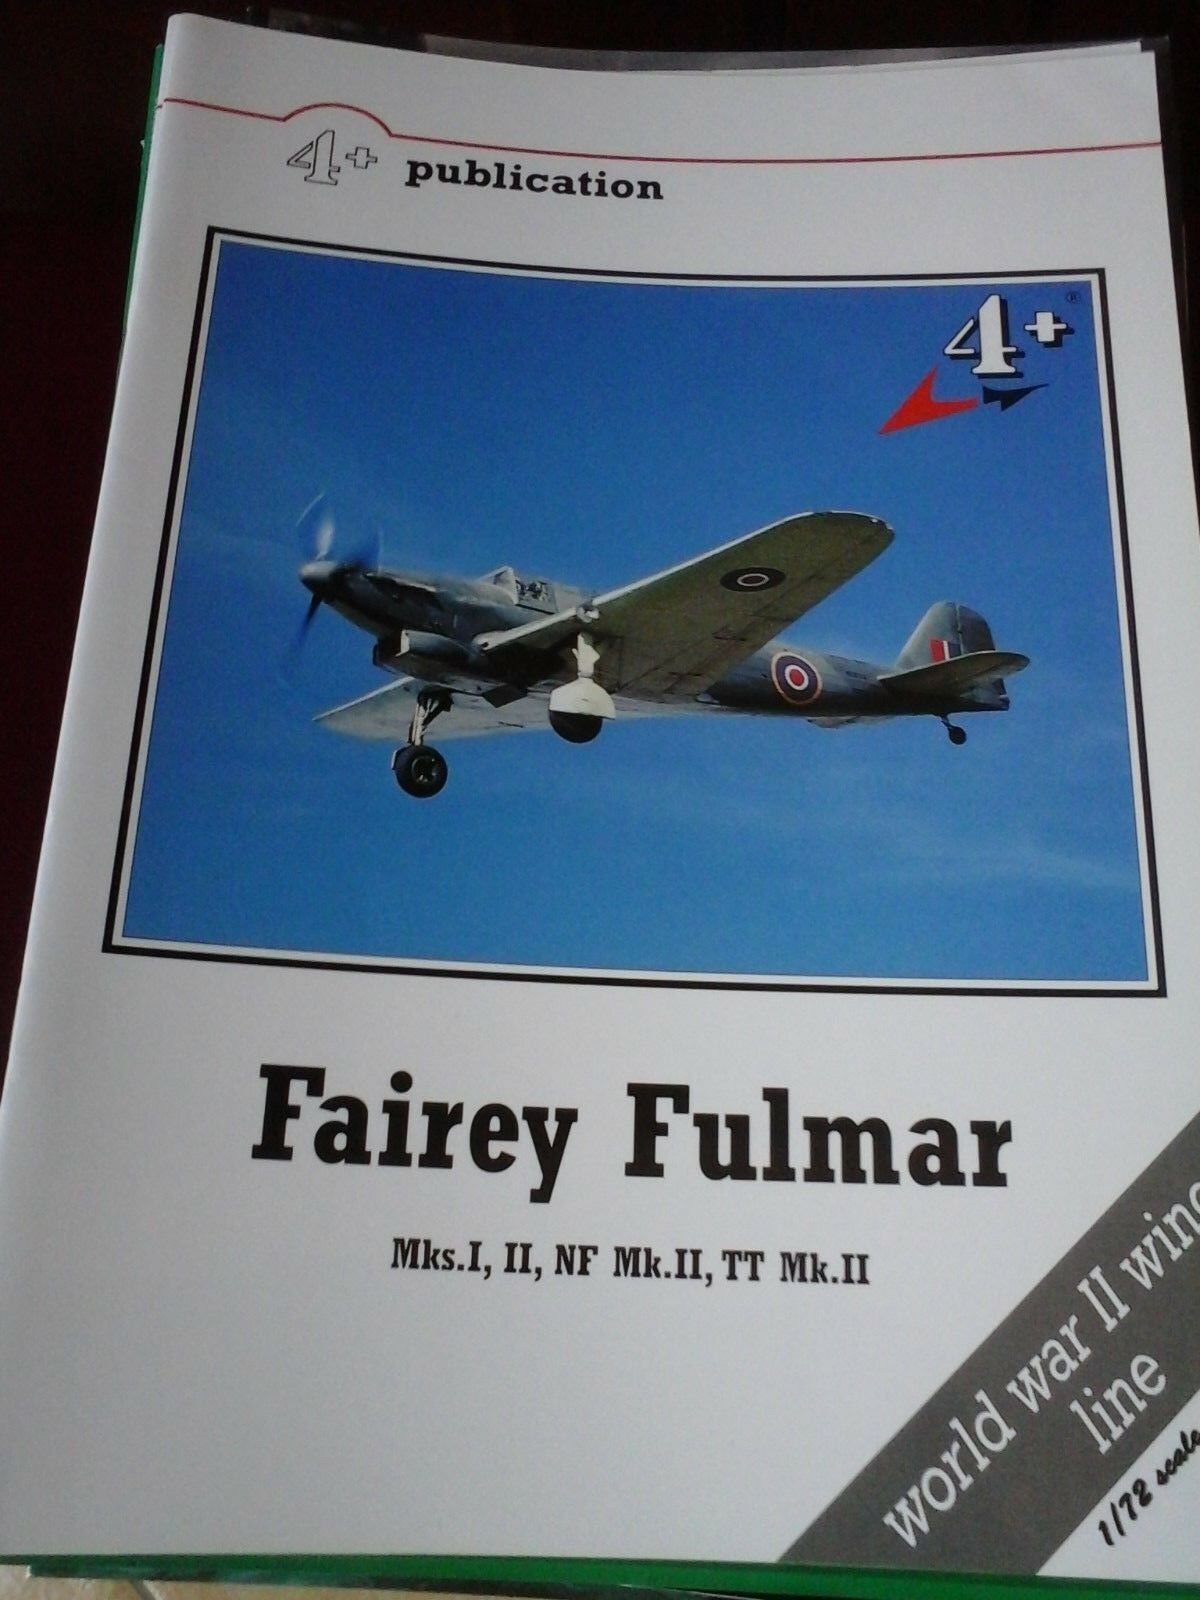 FAIREY FULMAR Mks.I,II,NF Mk.II,TT Mk.II--BY 4+PUBLICATION MARK1LTD WWII WINGS L